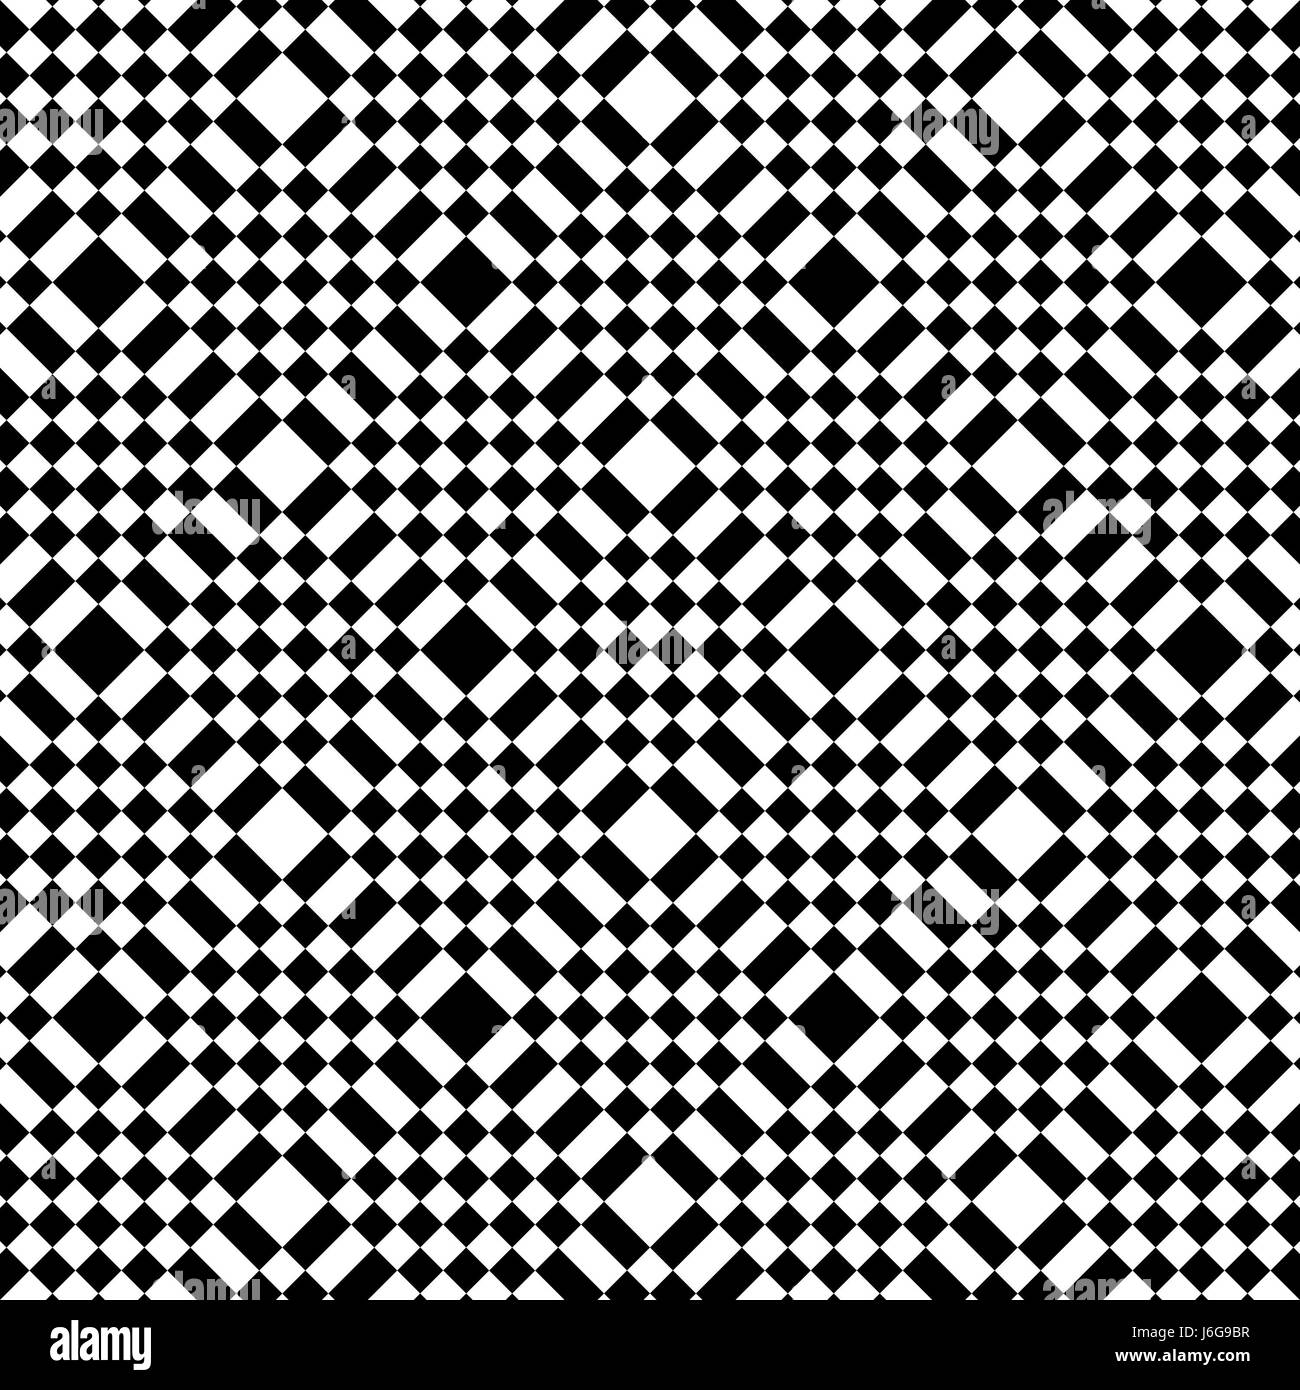 pattern black and white stock photos